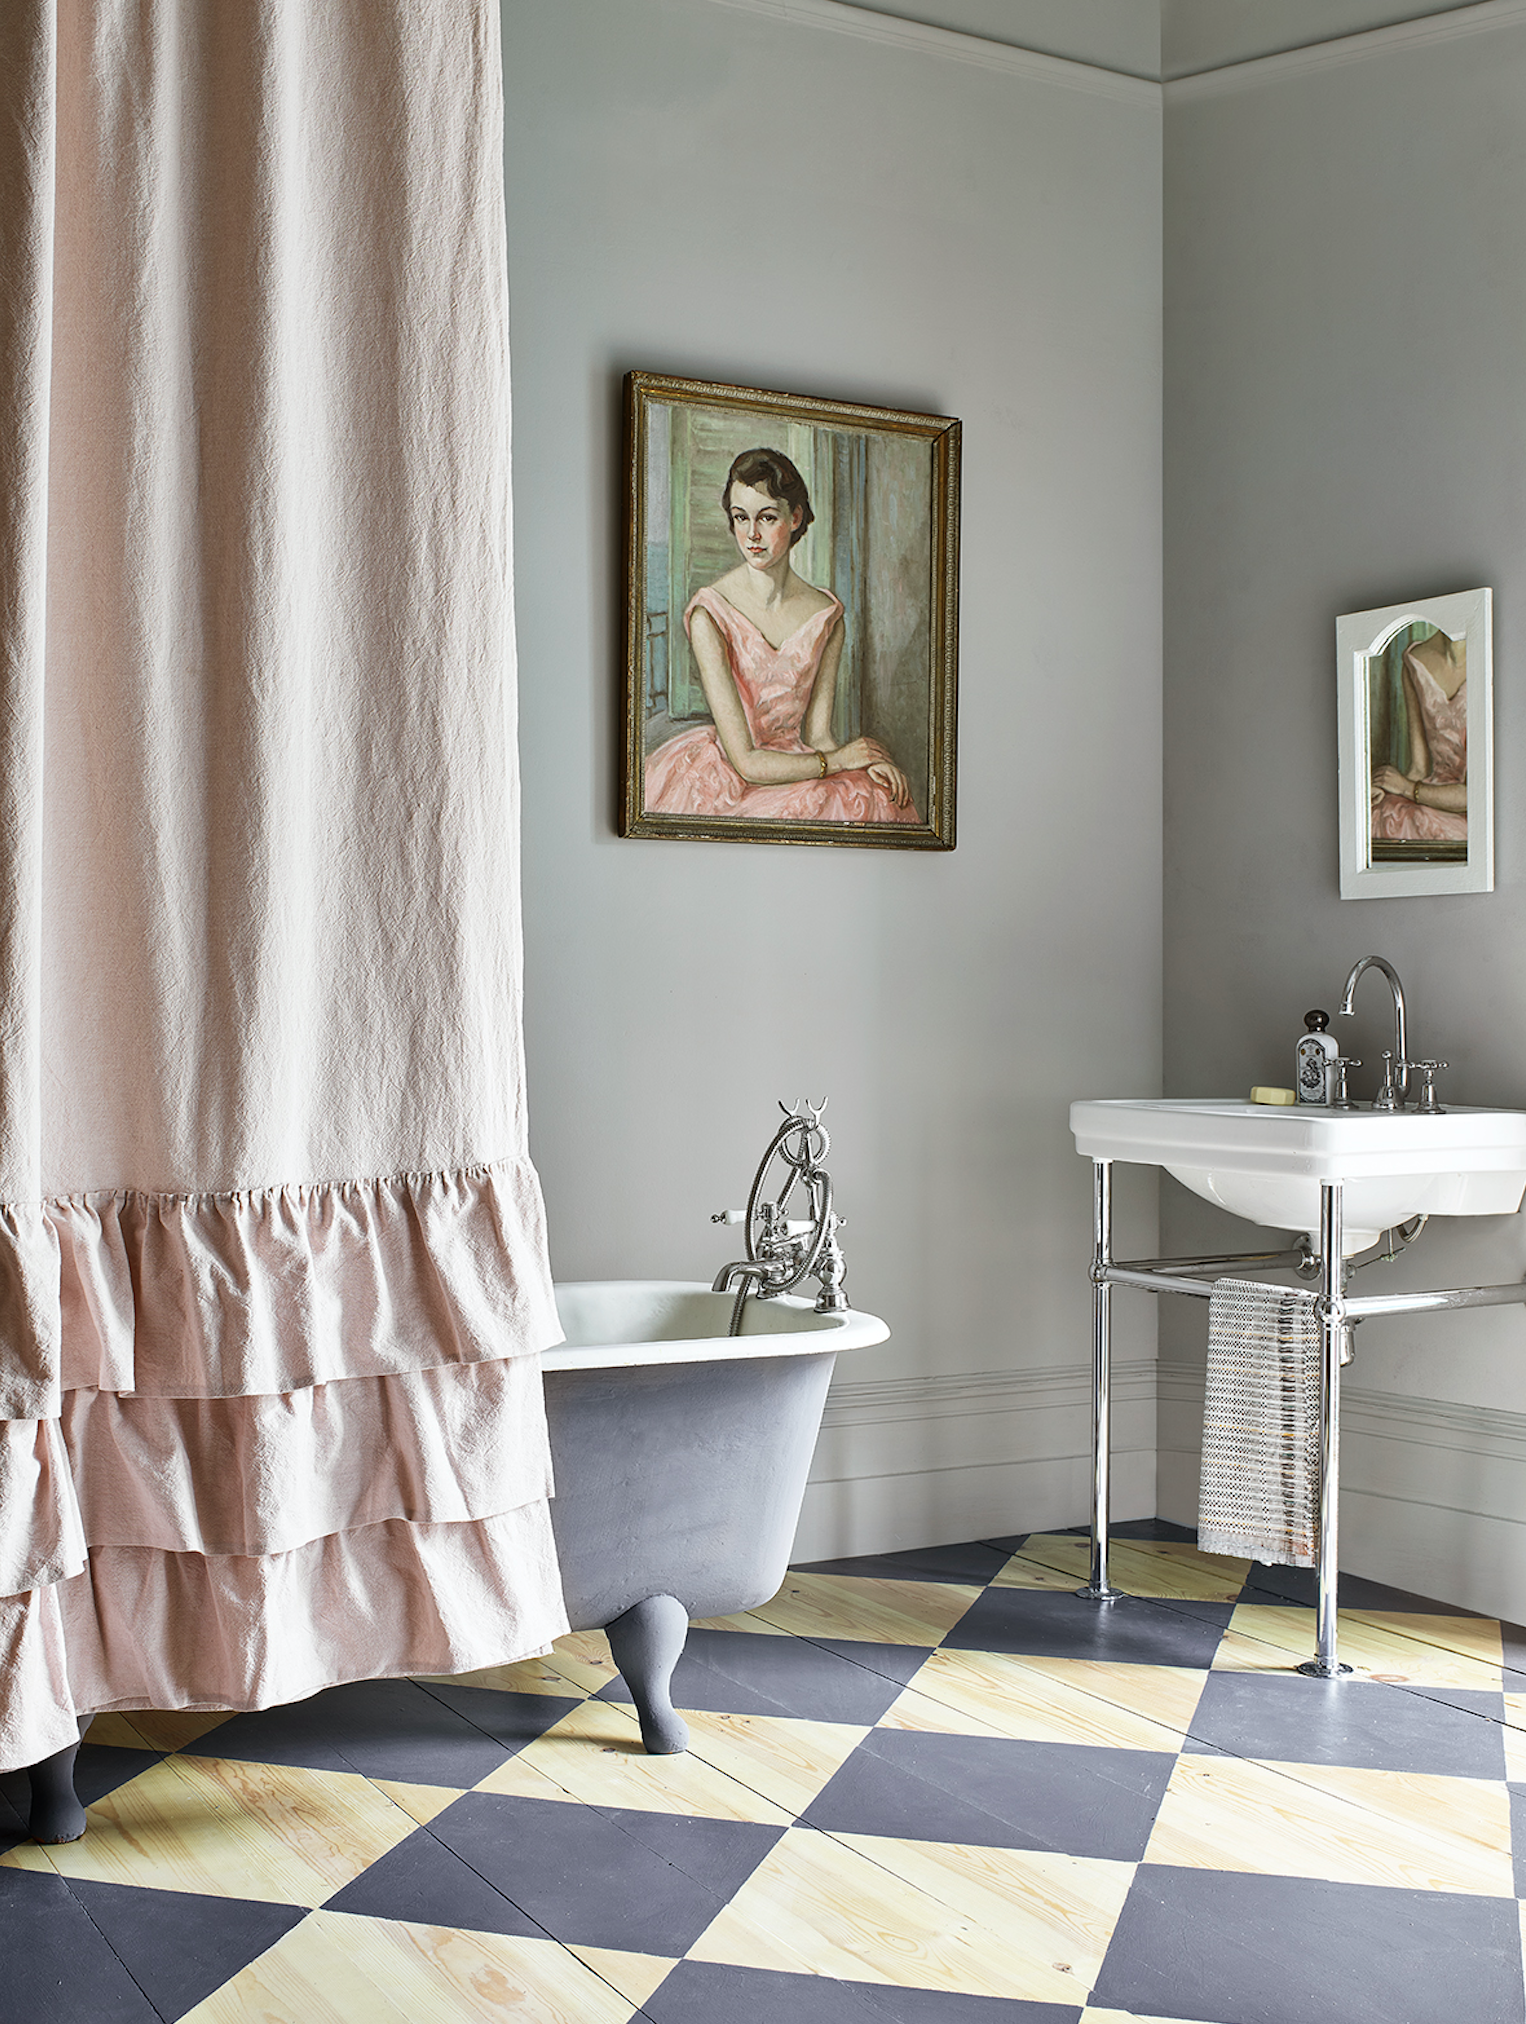 Annie Sloan chalk paint has been used in this bathroom